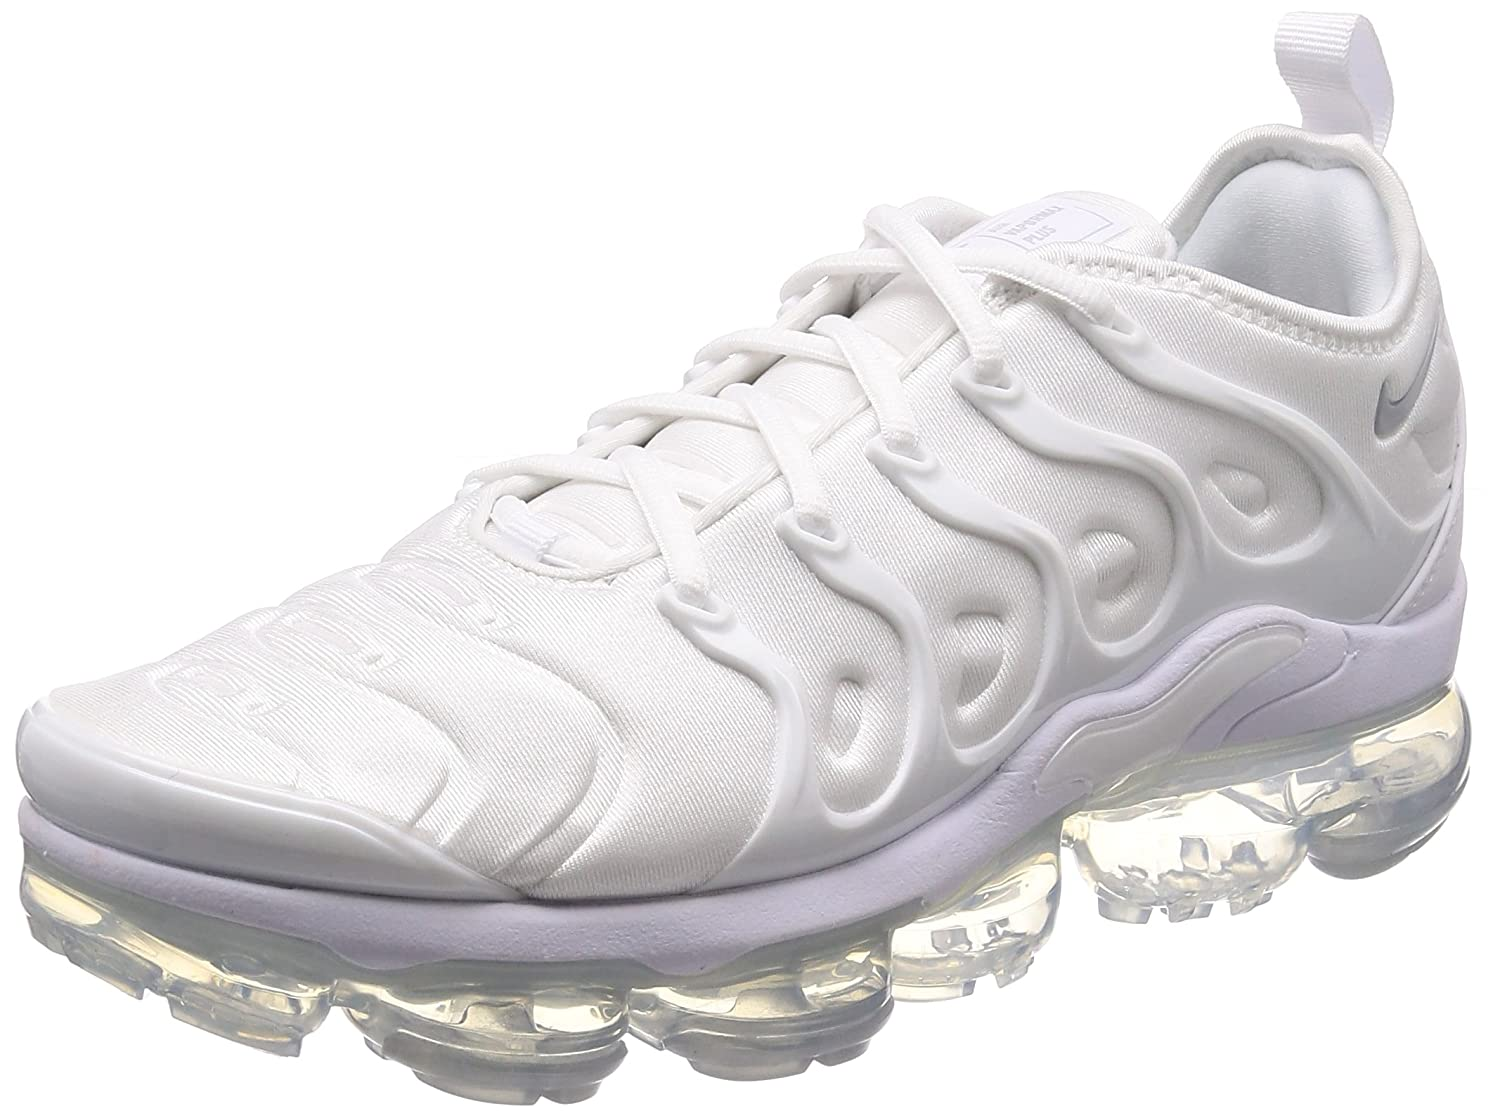 new arrival fb825 b0adc Nike Air Vapormax Plus